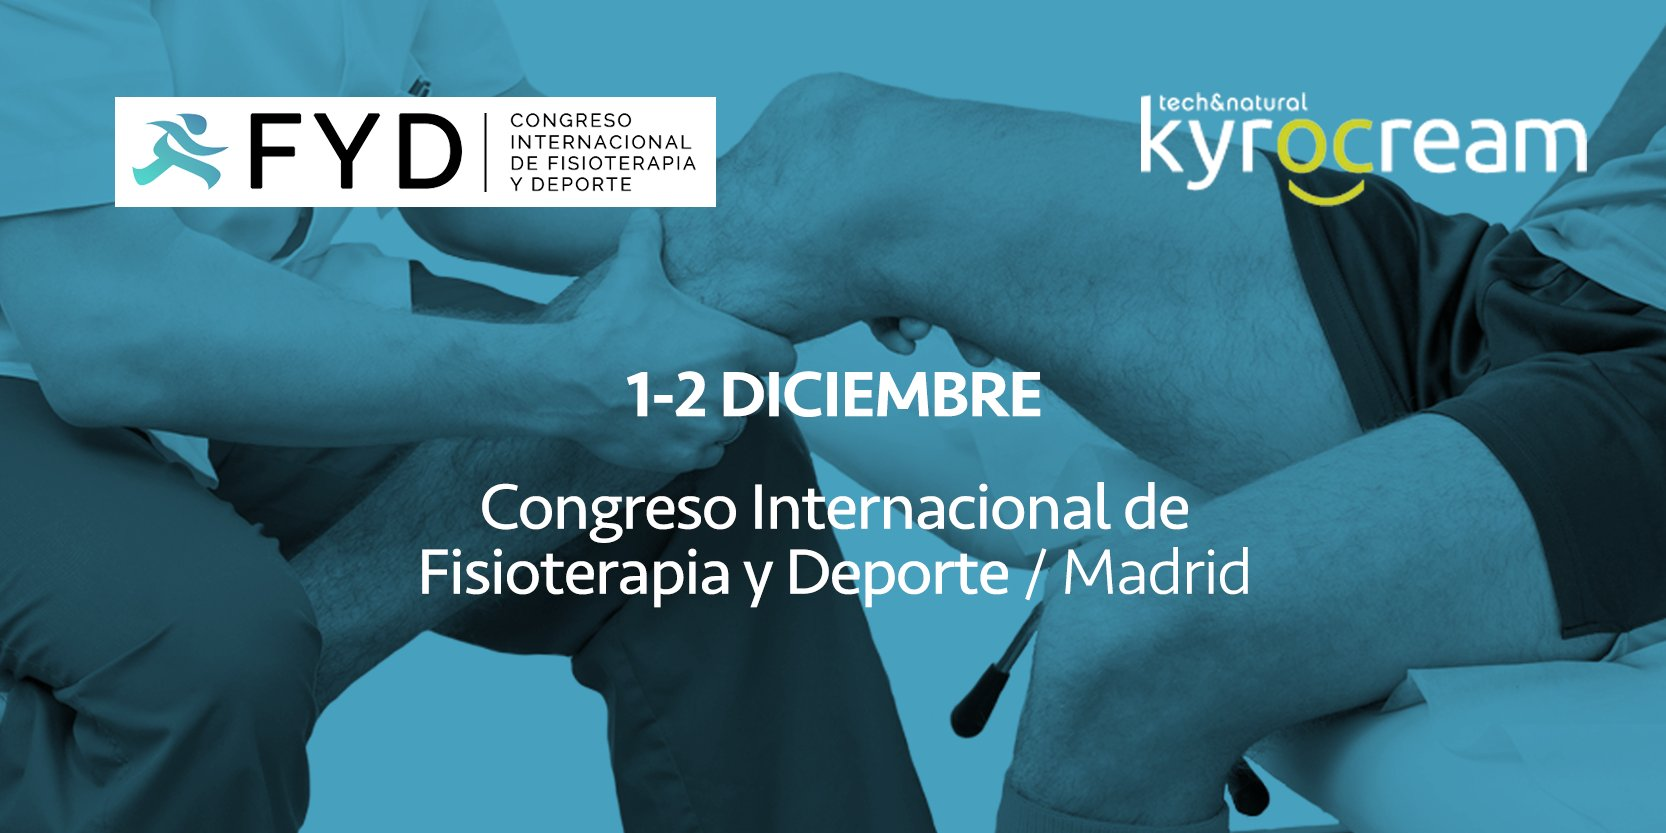 Outback at the International Physiotherapy Congress held in the Hospital Clínico de Madrid